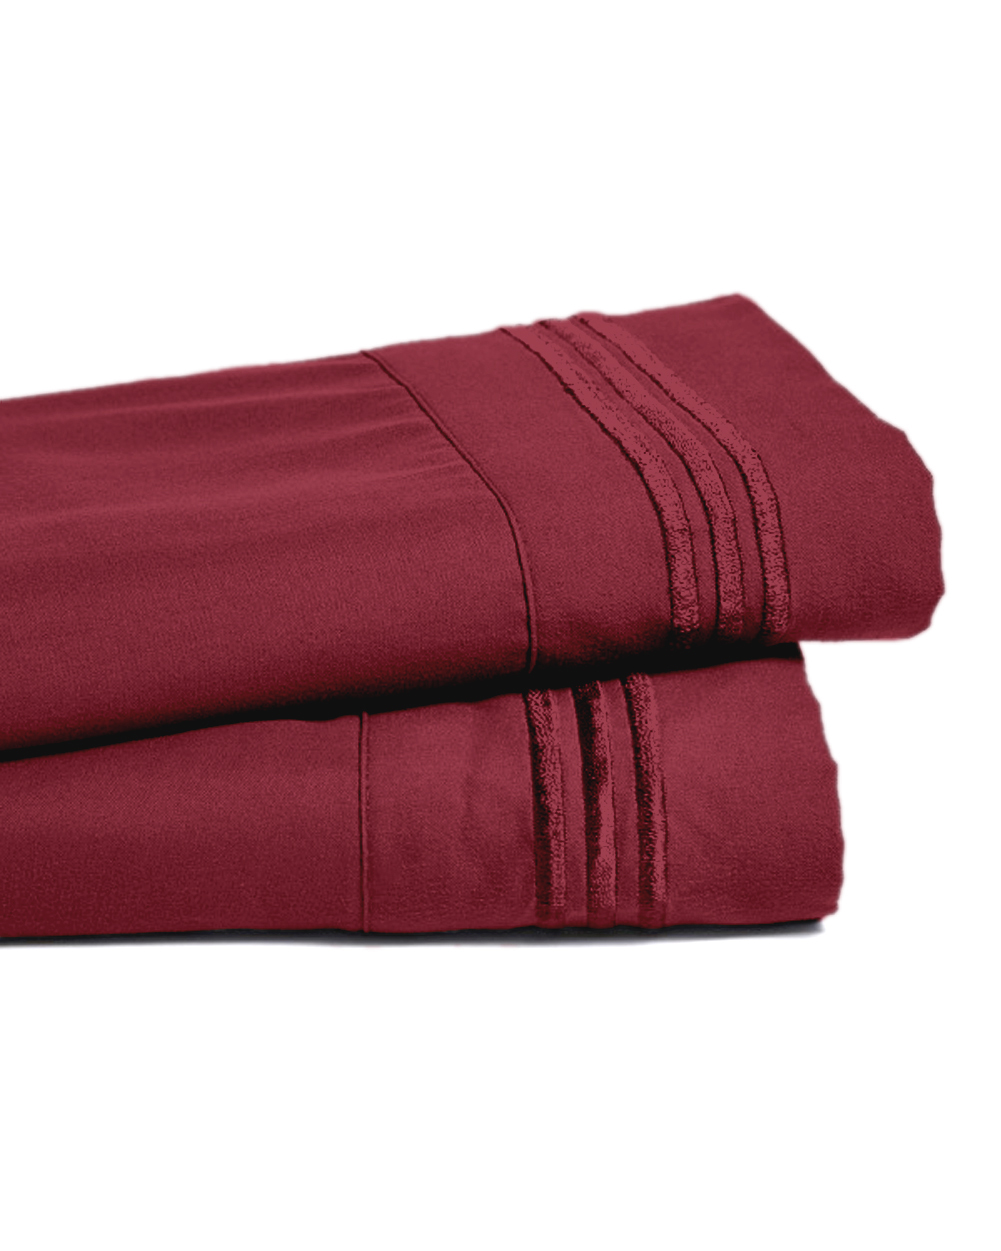 Deep Pocket Bamboo Bed Sheet - Luxury 2200 Embroidered Wrinkle, Fade and Stain Resistant Sheets - Burgundy Full Size